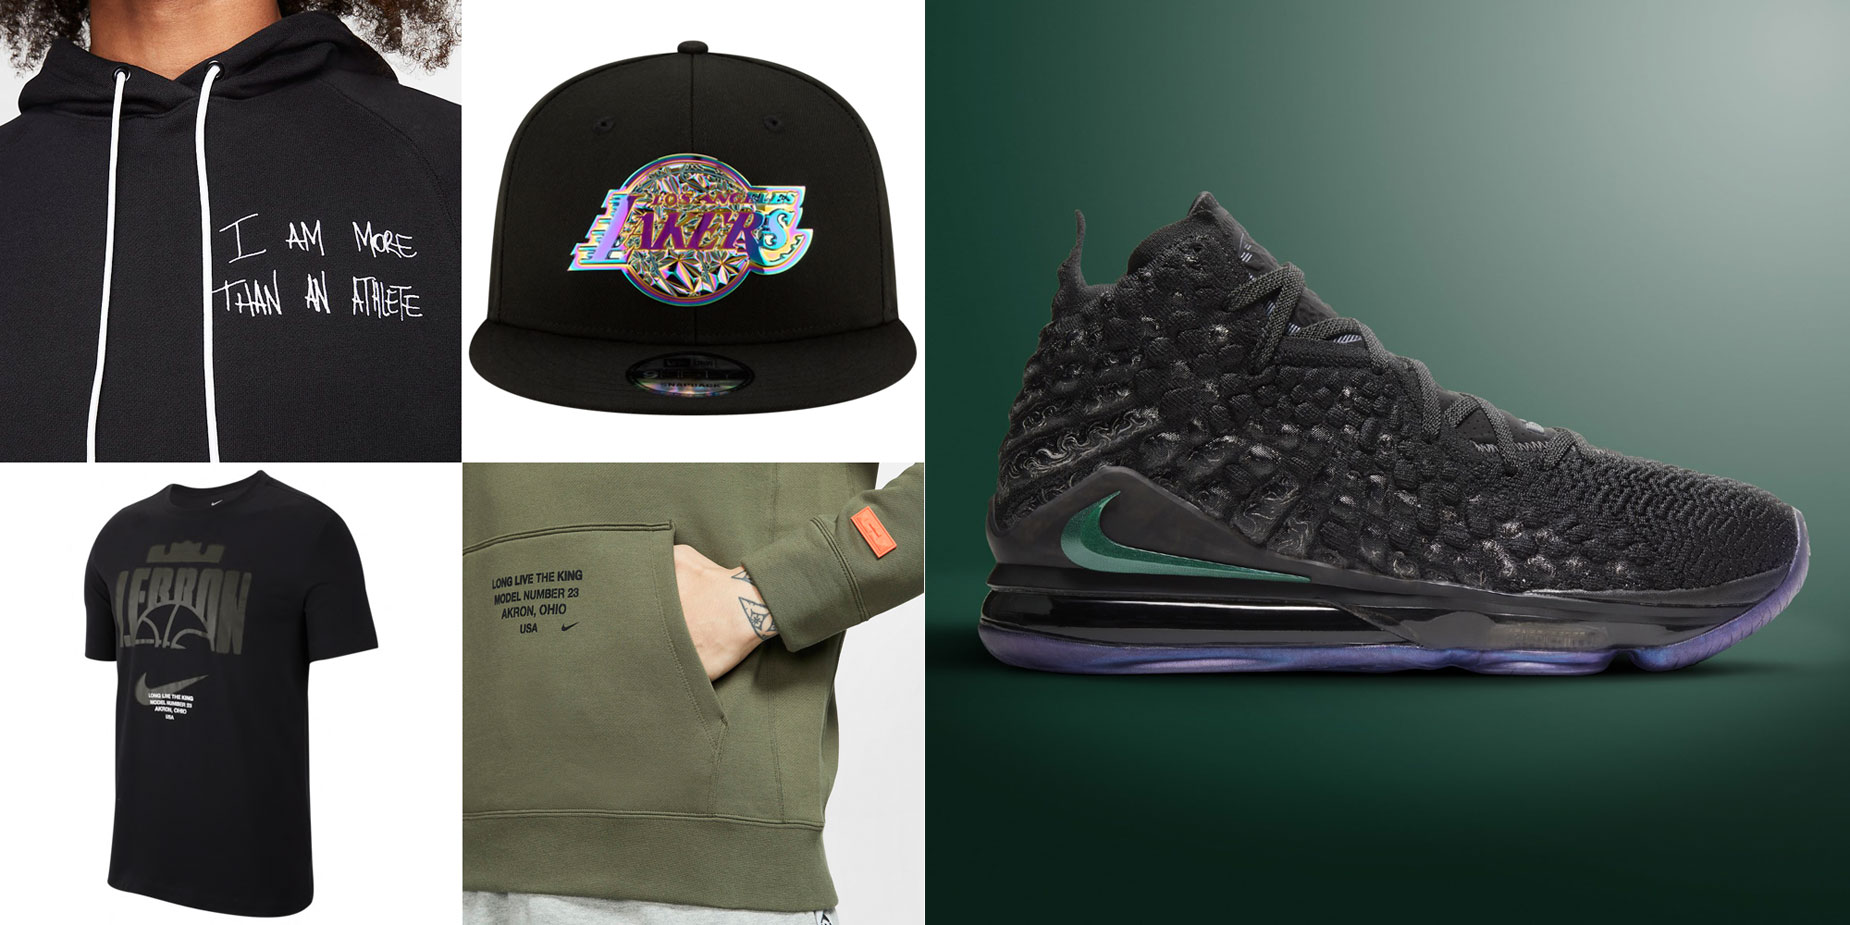 nike-lebron-17-currency-clothing-hat-match